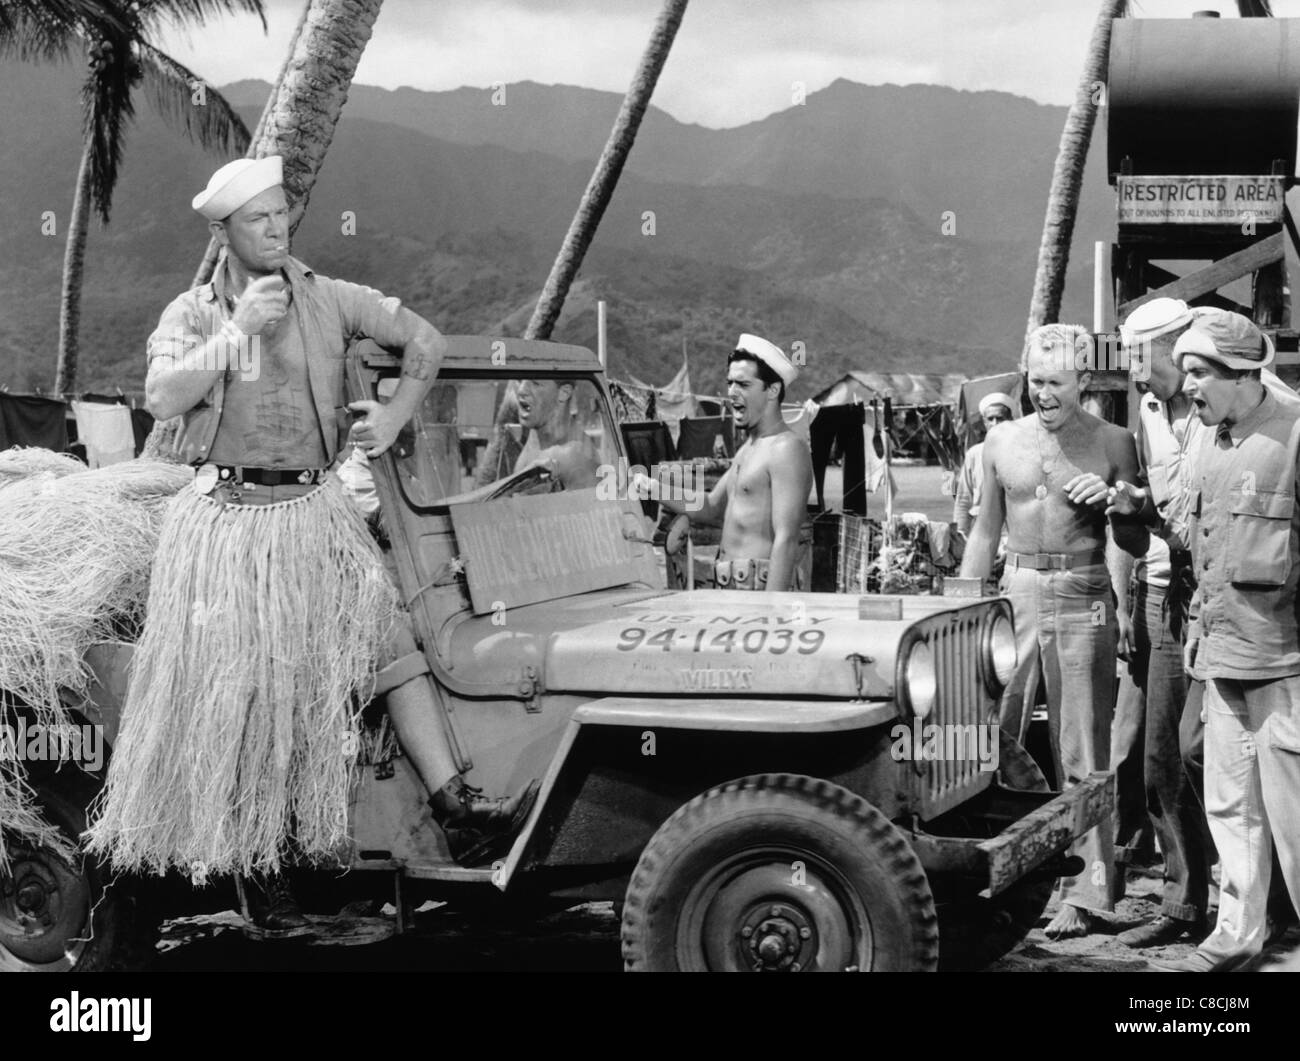 RAY WALSTON SOUTH PACIFIC (1958) - Stock Image